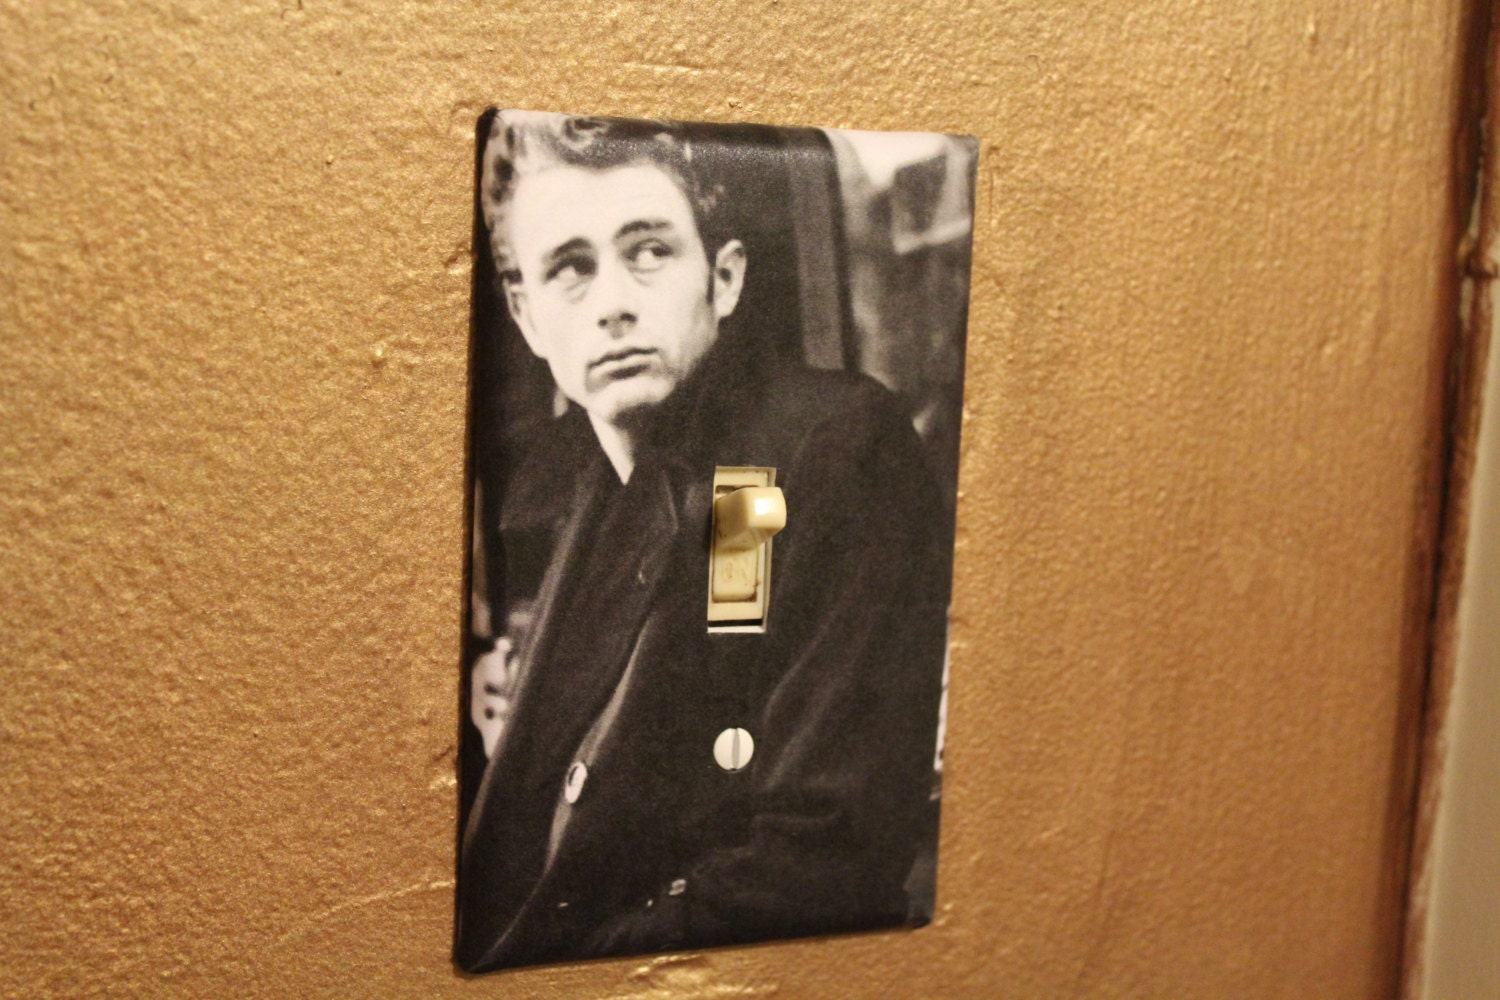 James Dean Decorative Light Switch Cover Plate By Btpart